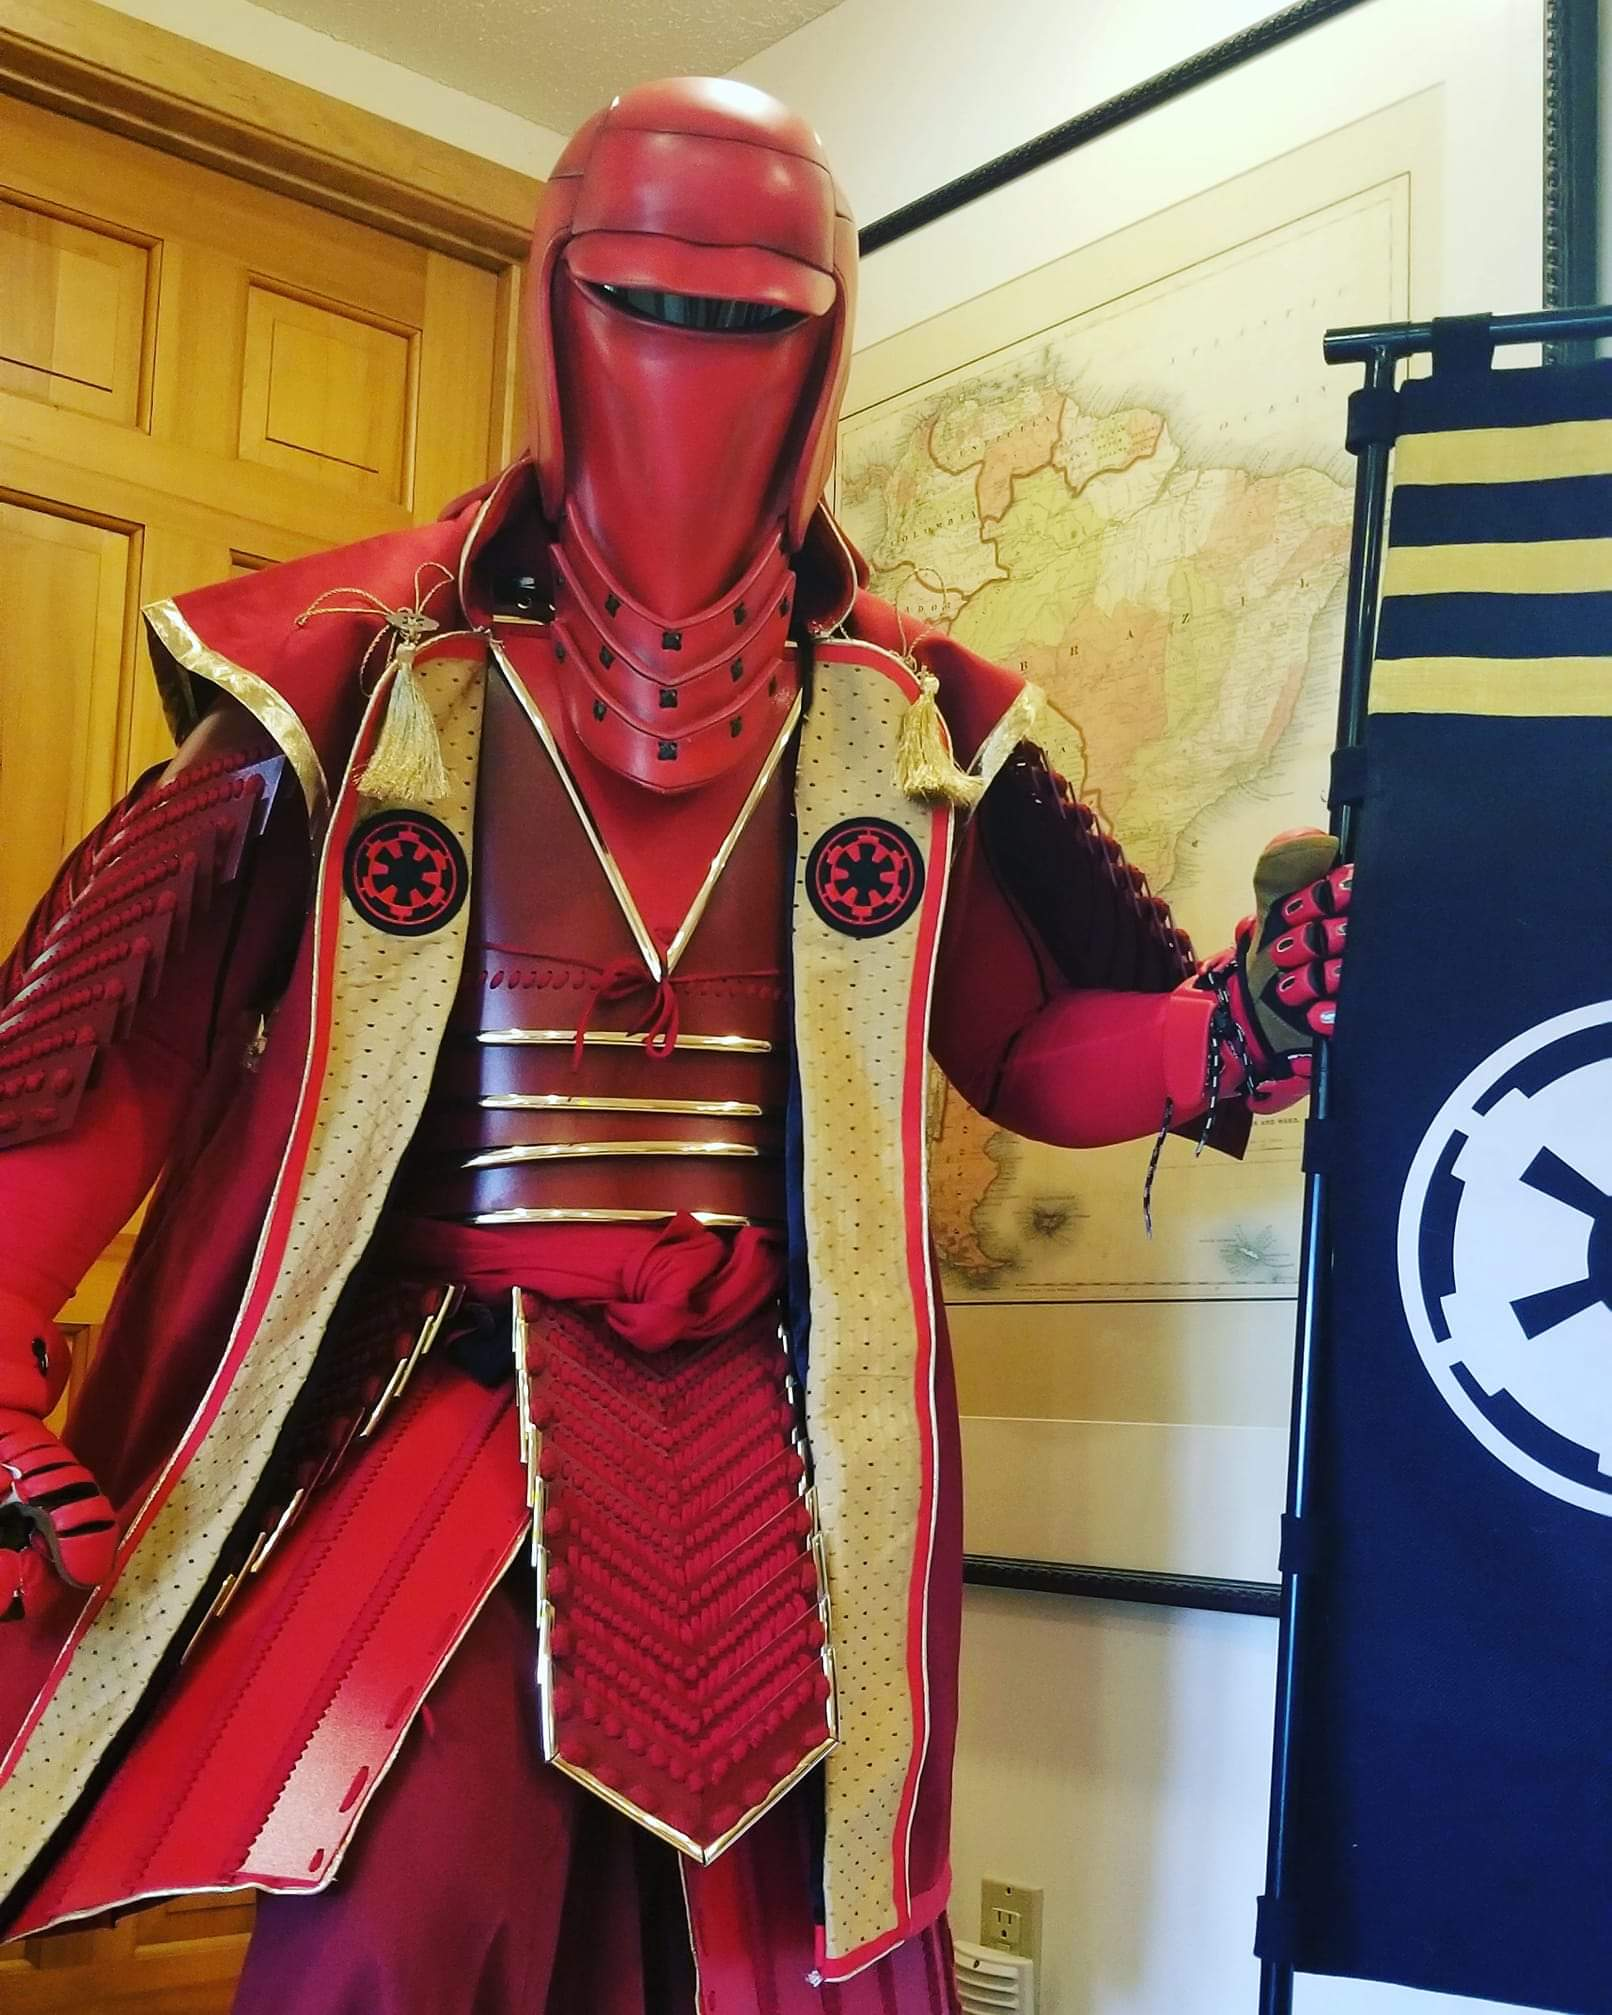 Samurai Imperial Guard cosplay by Ryan Kappes